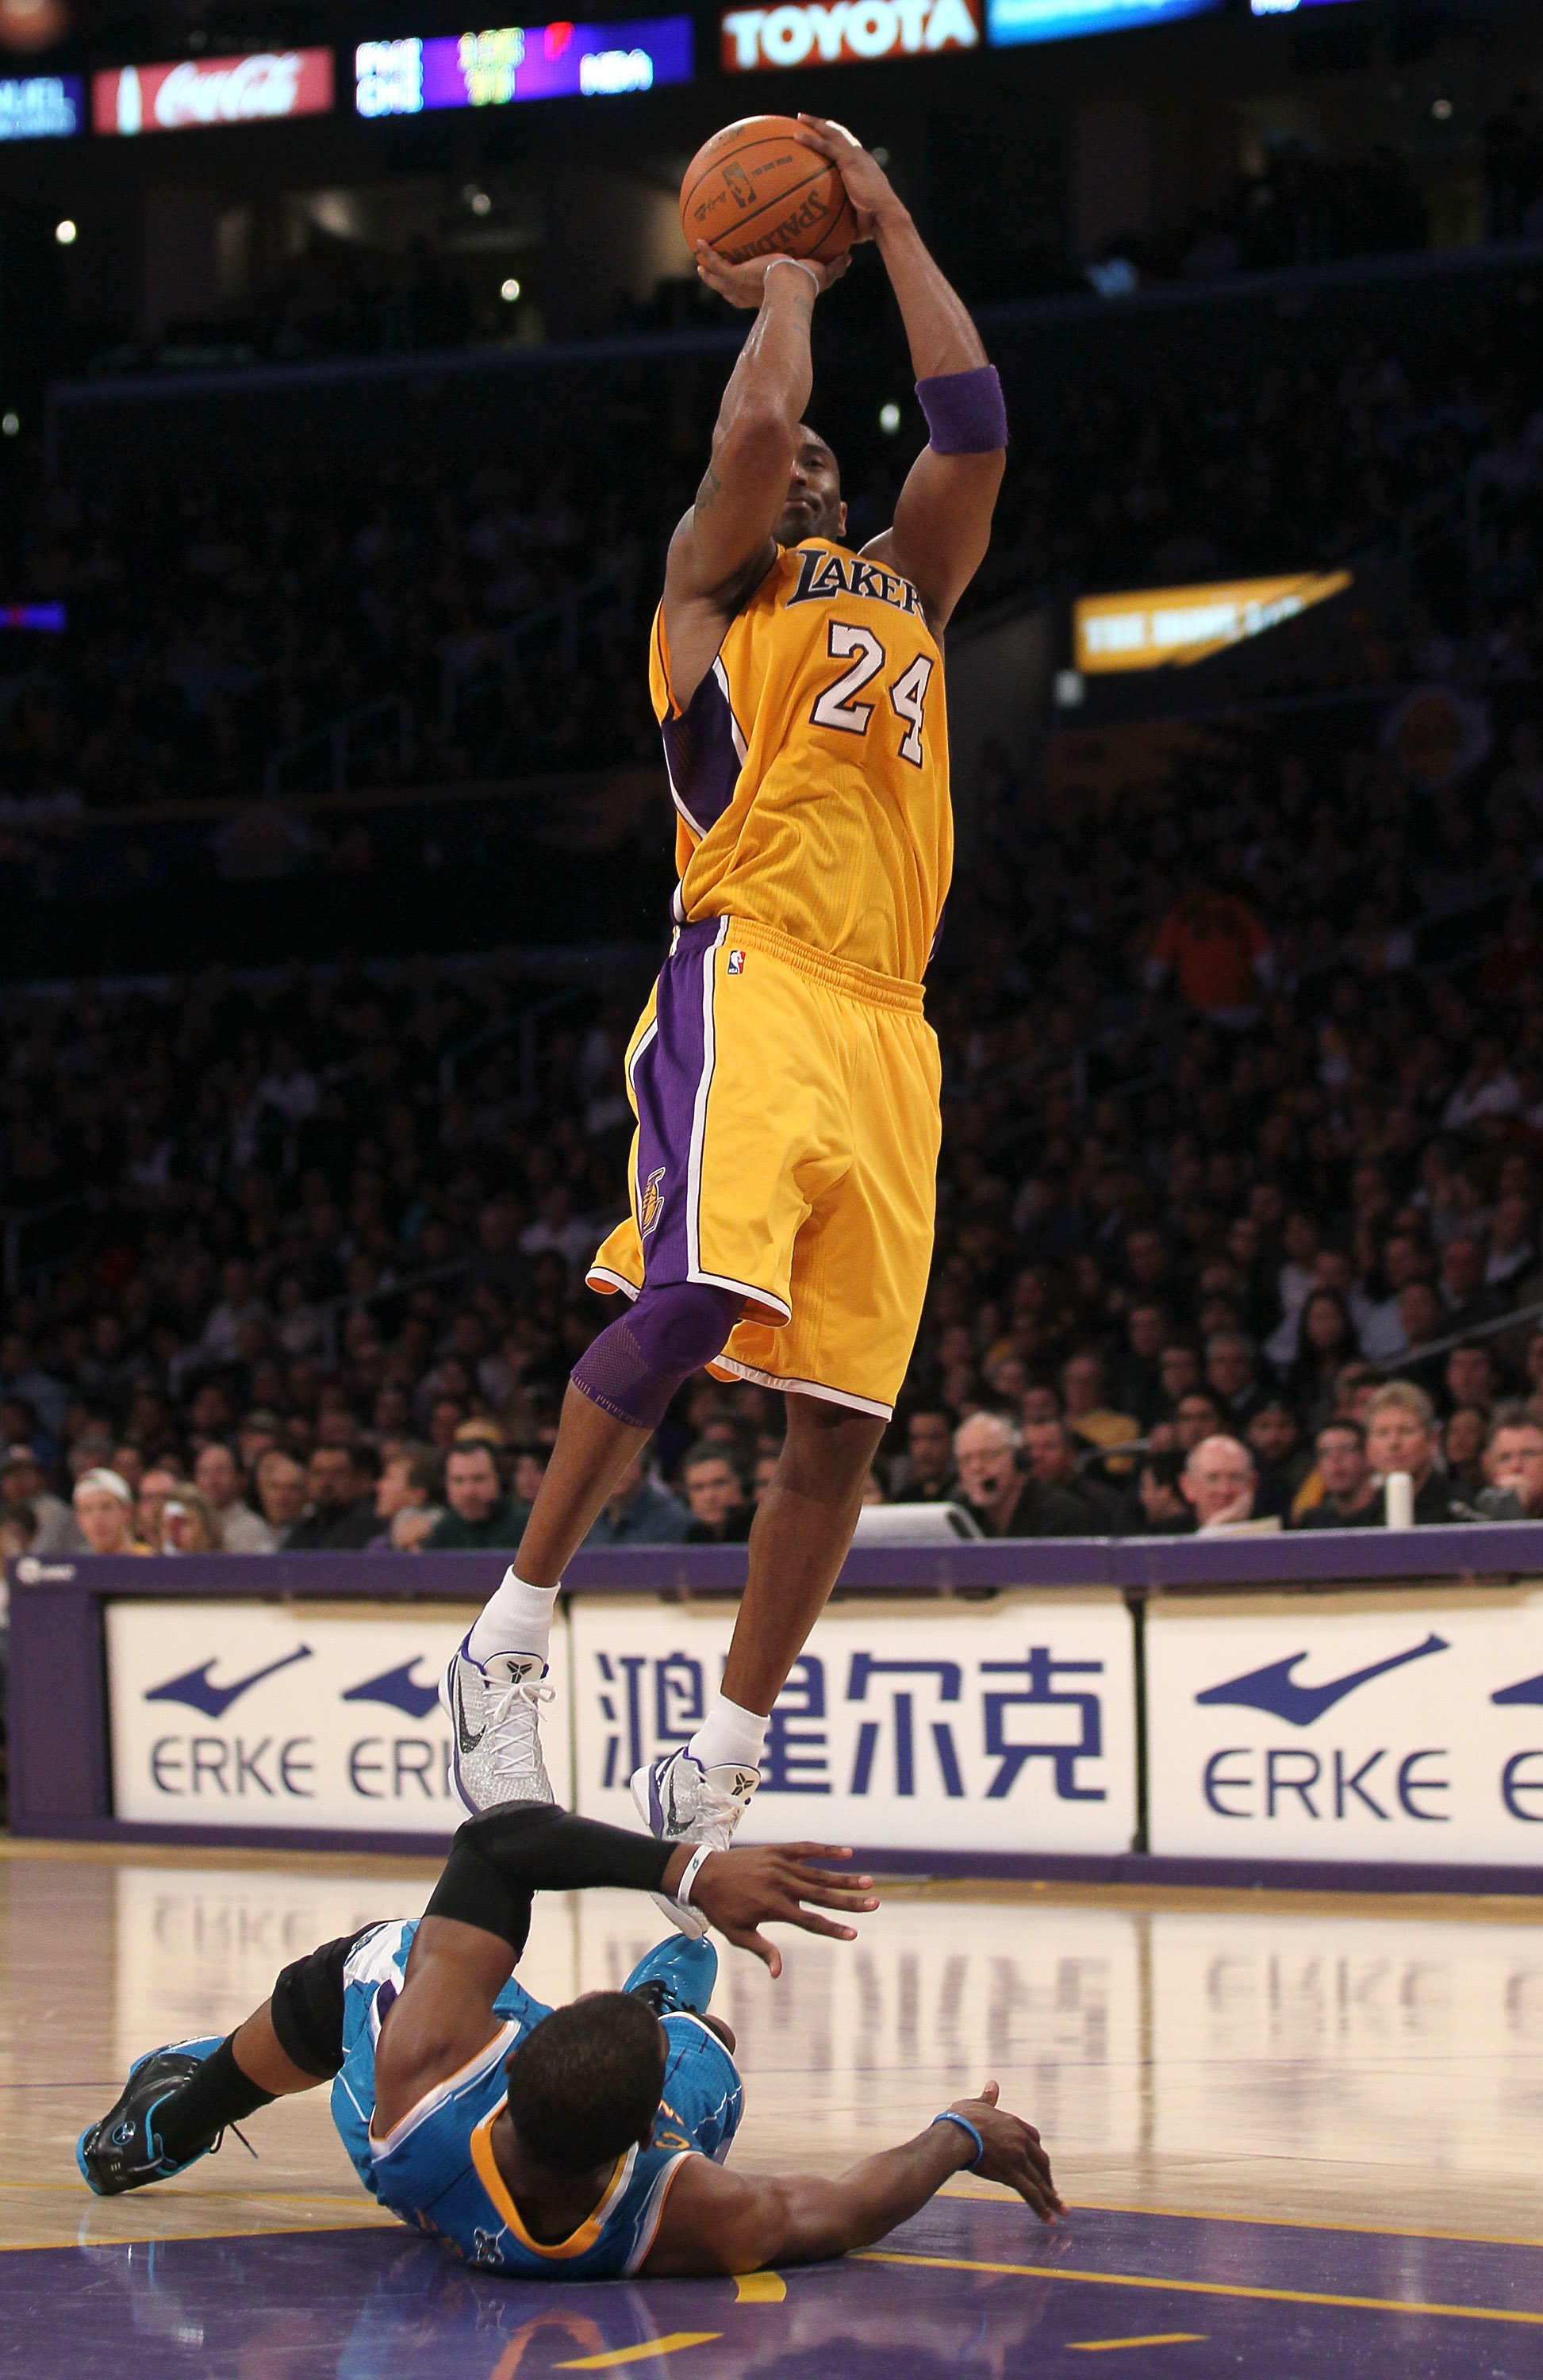 LOS ANGELES, CA - JANUARY 07:  Kobe Bryant #24 of the Los Angeles Lakers shoots over fallen Chris Paul #3 of the New Orleans Hornets at Staples Center on January 7, 2011 in Los Angeles, California.  The Lakers won 101-97.  NOTE TO USER: User expressly ack